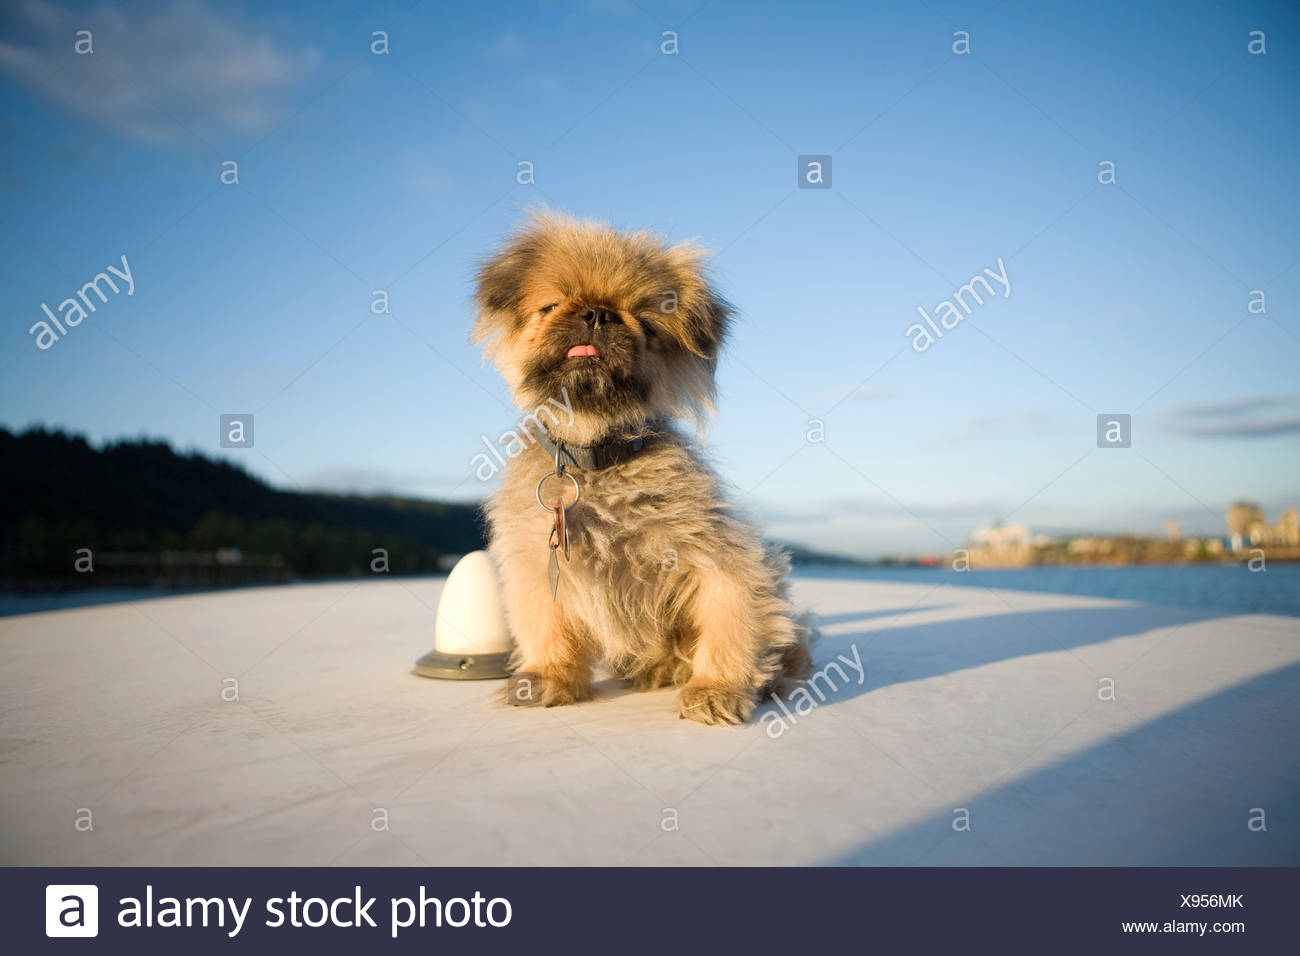 Portrait of small toy breed dog on deck of boat - Stock Image